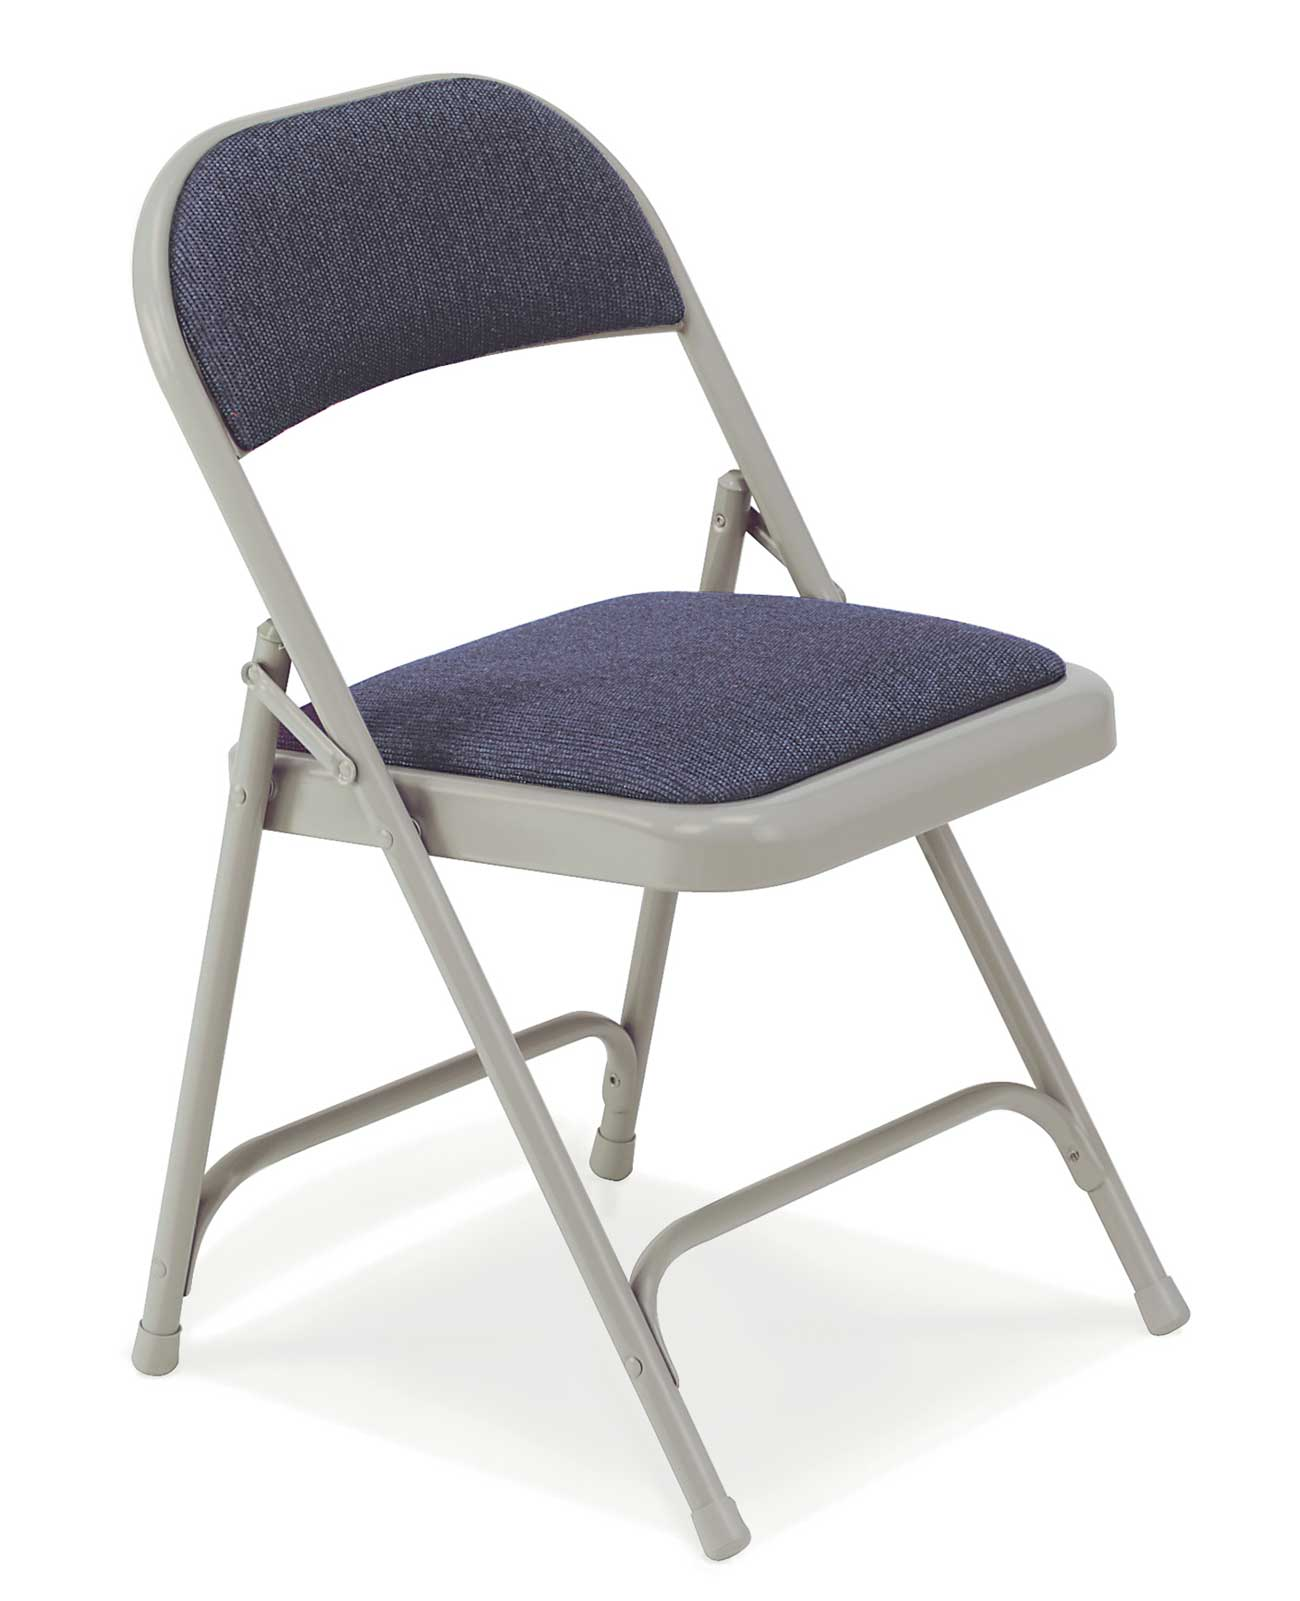 Metal padded office folding chairs